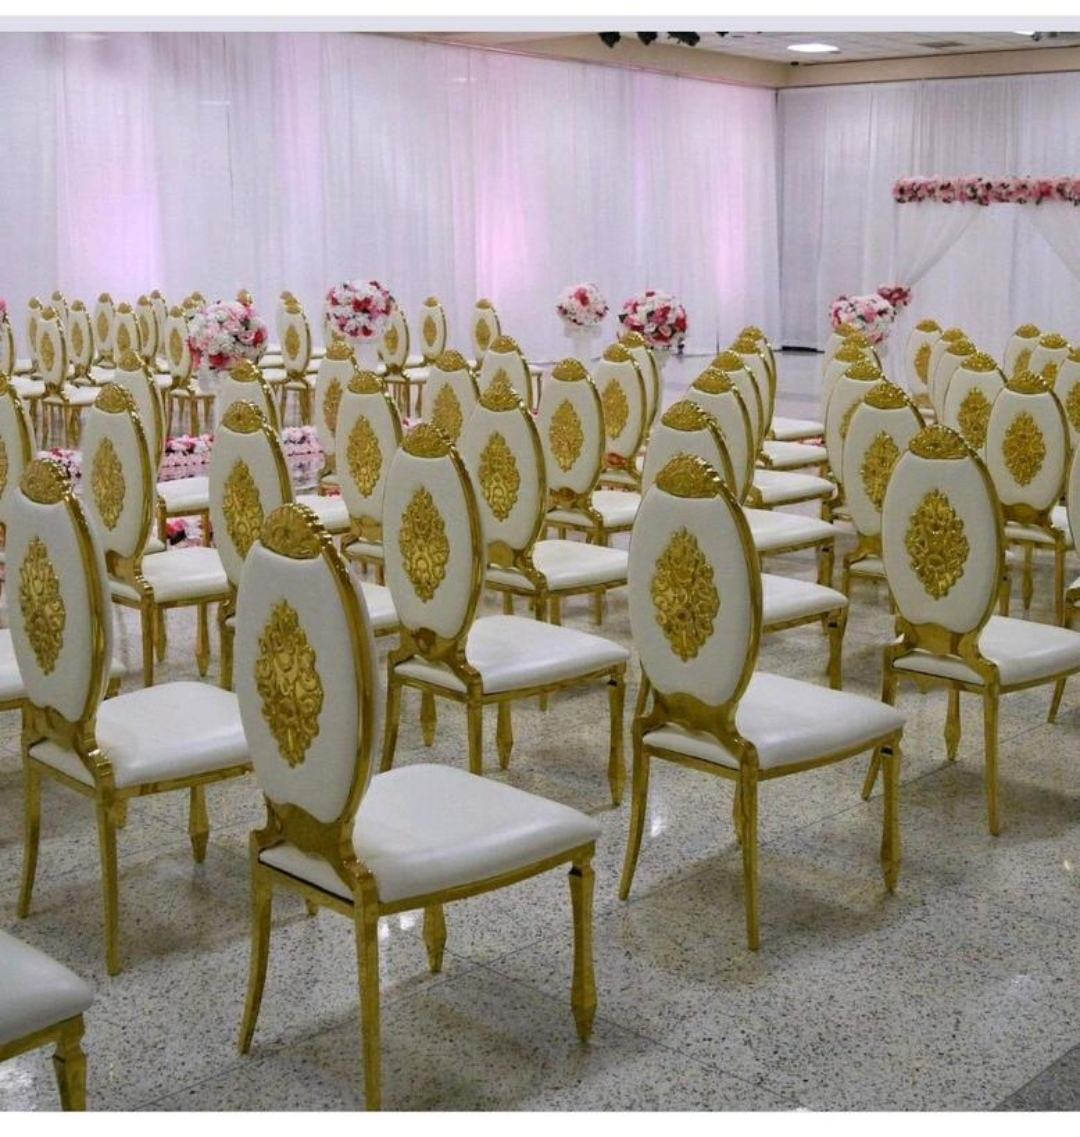 Hot Sales Luxury Wedding Event Gold Reception Chair Stainless Steel PU upholster Dining Chair